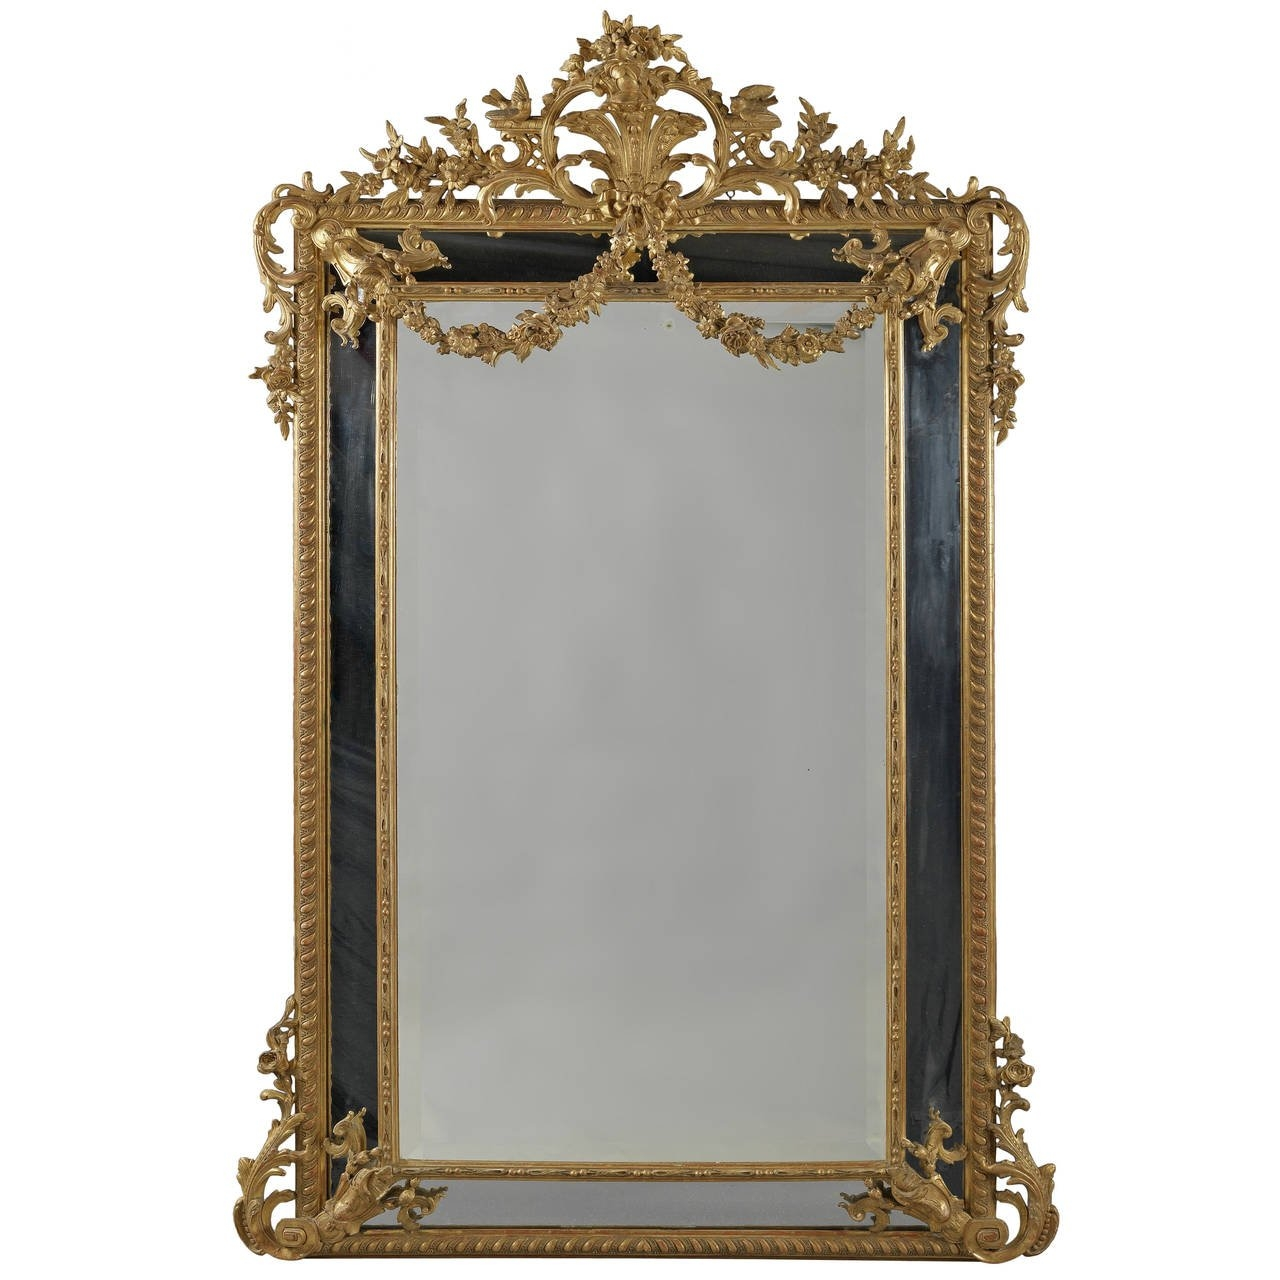 Large Antique Mirror For Sale At 1stdibs Throughout Large Antique Mirror For Sale (Image 10 of 15)